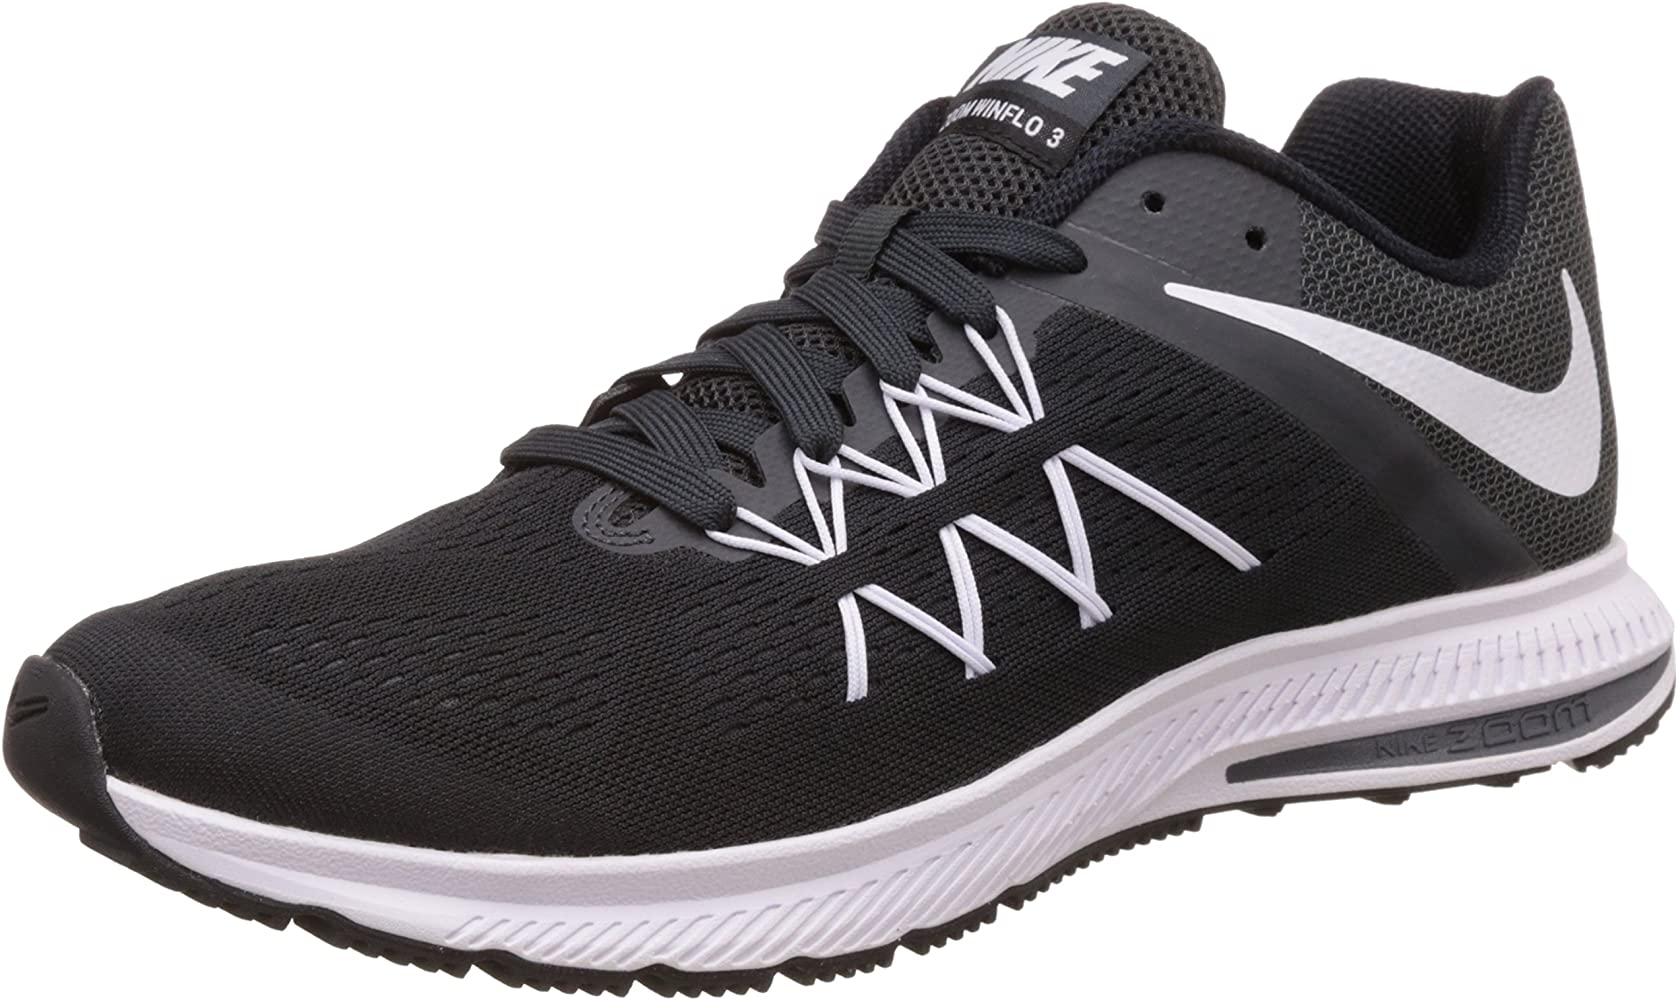 15b8197a14aed Air Zoom Winflo 3 Men's Running Shoe (14 D(M) US, Black/White/Anthracite)